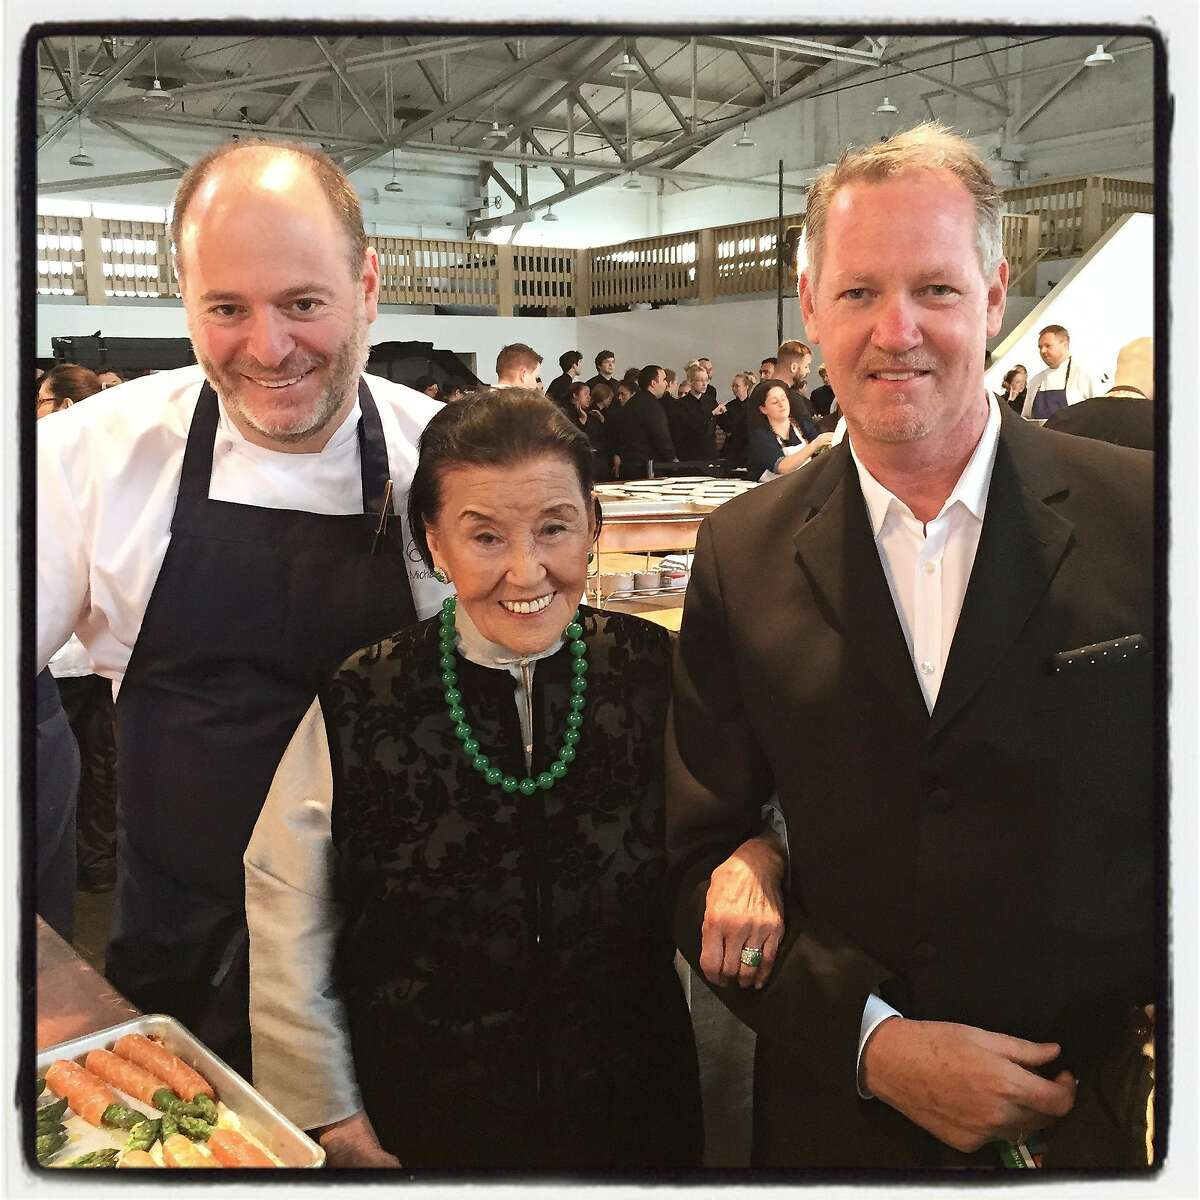 Chef Michael Tusk (left) with gala founder, chef Cecilia Chiang and ifonly.com Culinary Director Michael Murphy at the MOW Gala. April 2015. By Catherine Bigelow.